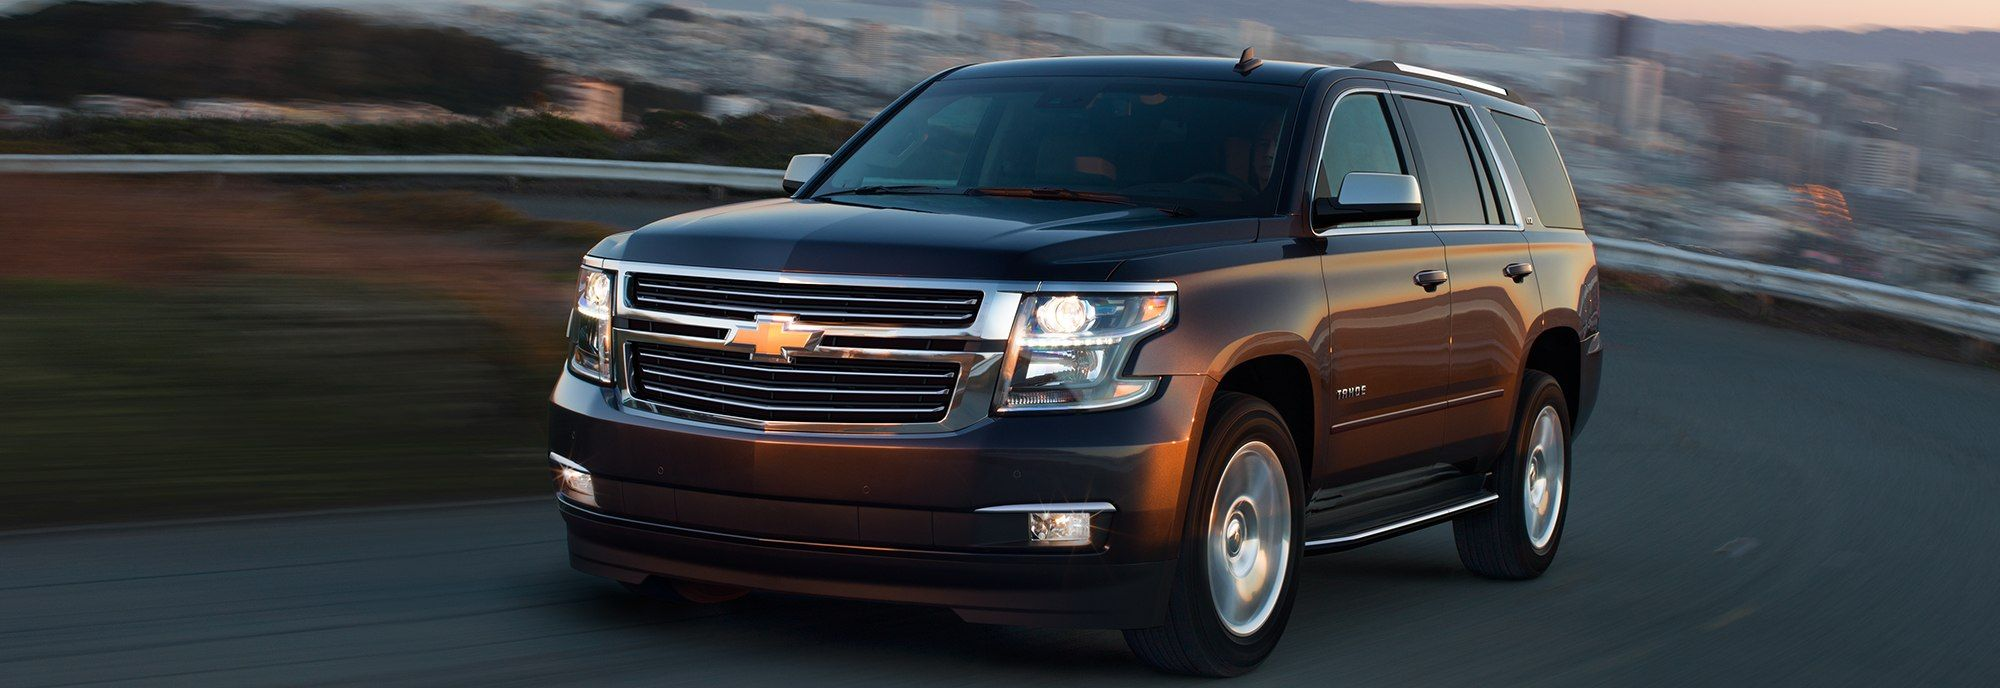 2019 Chevrolet Tahoe Leasing near Owasso, OK